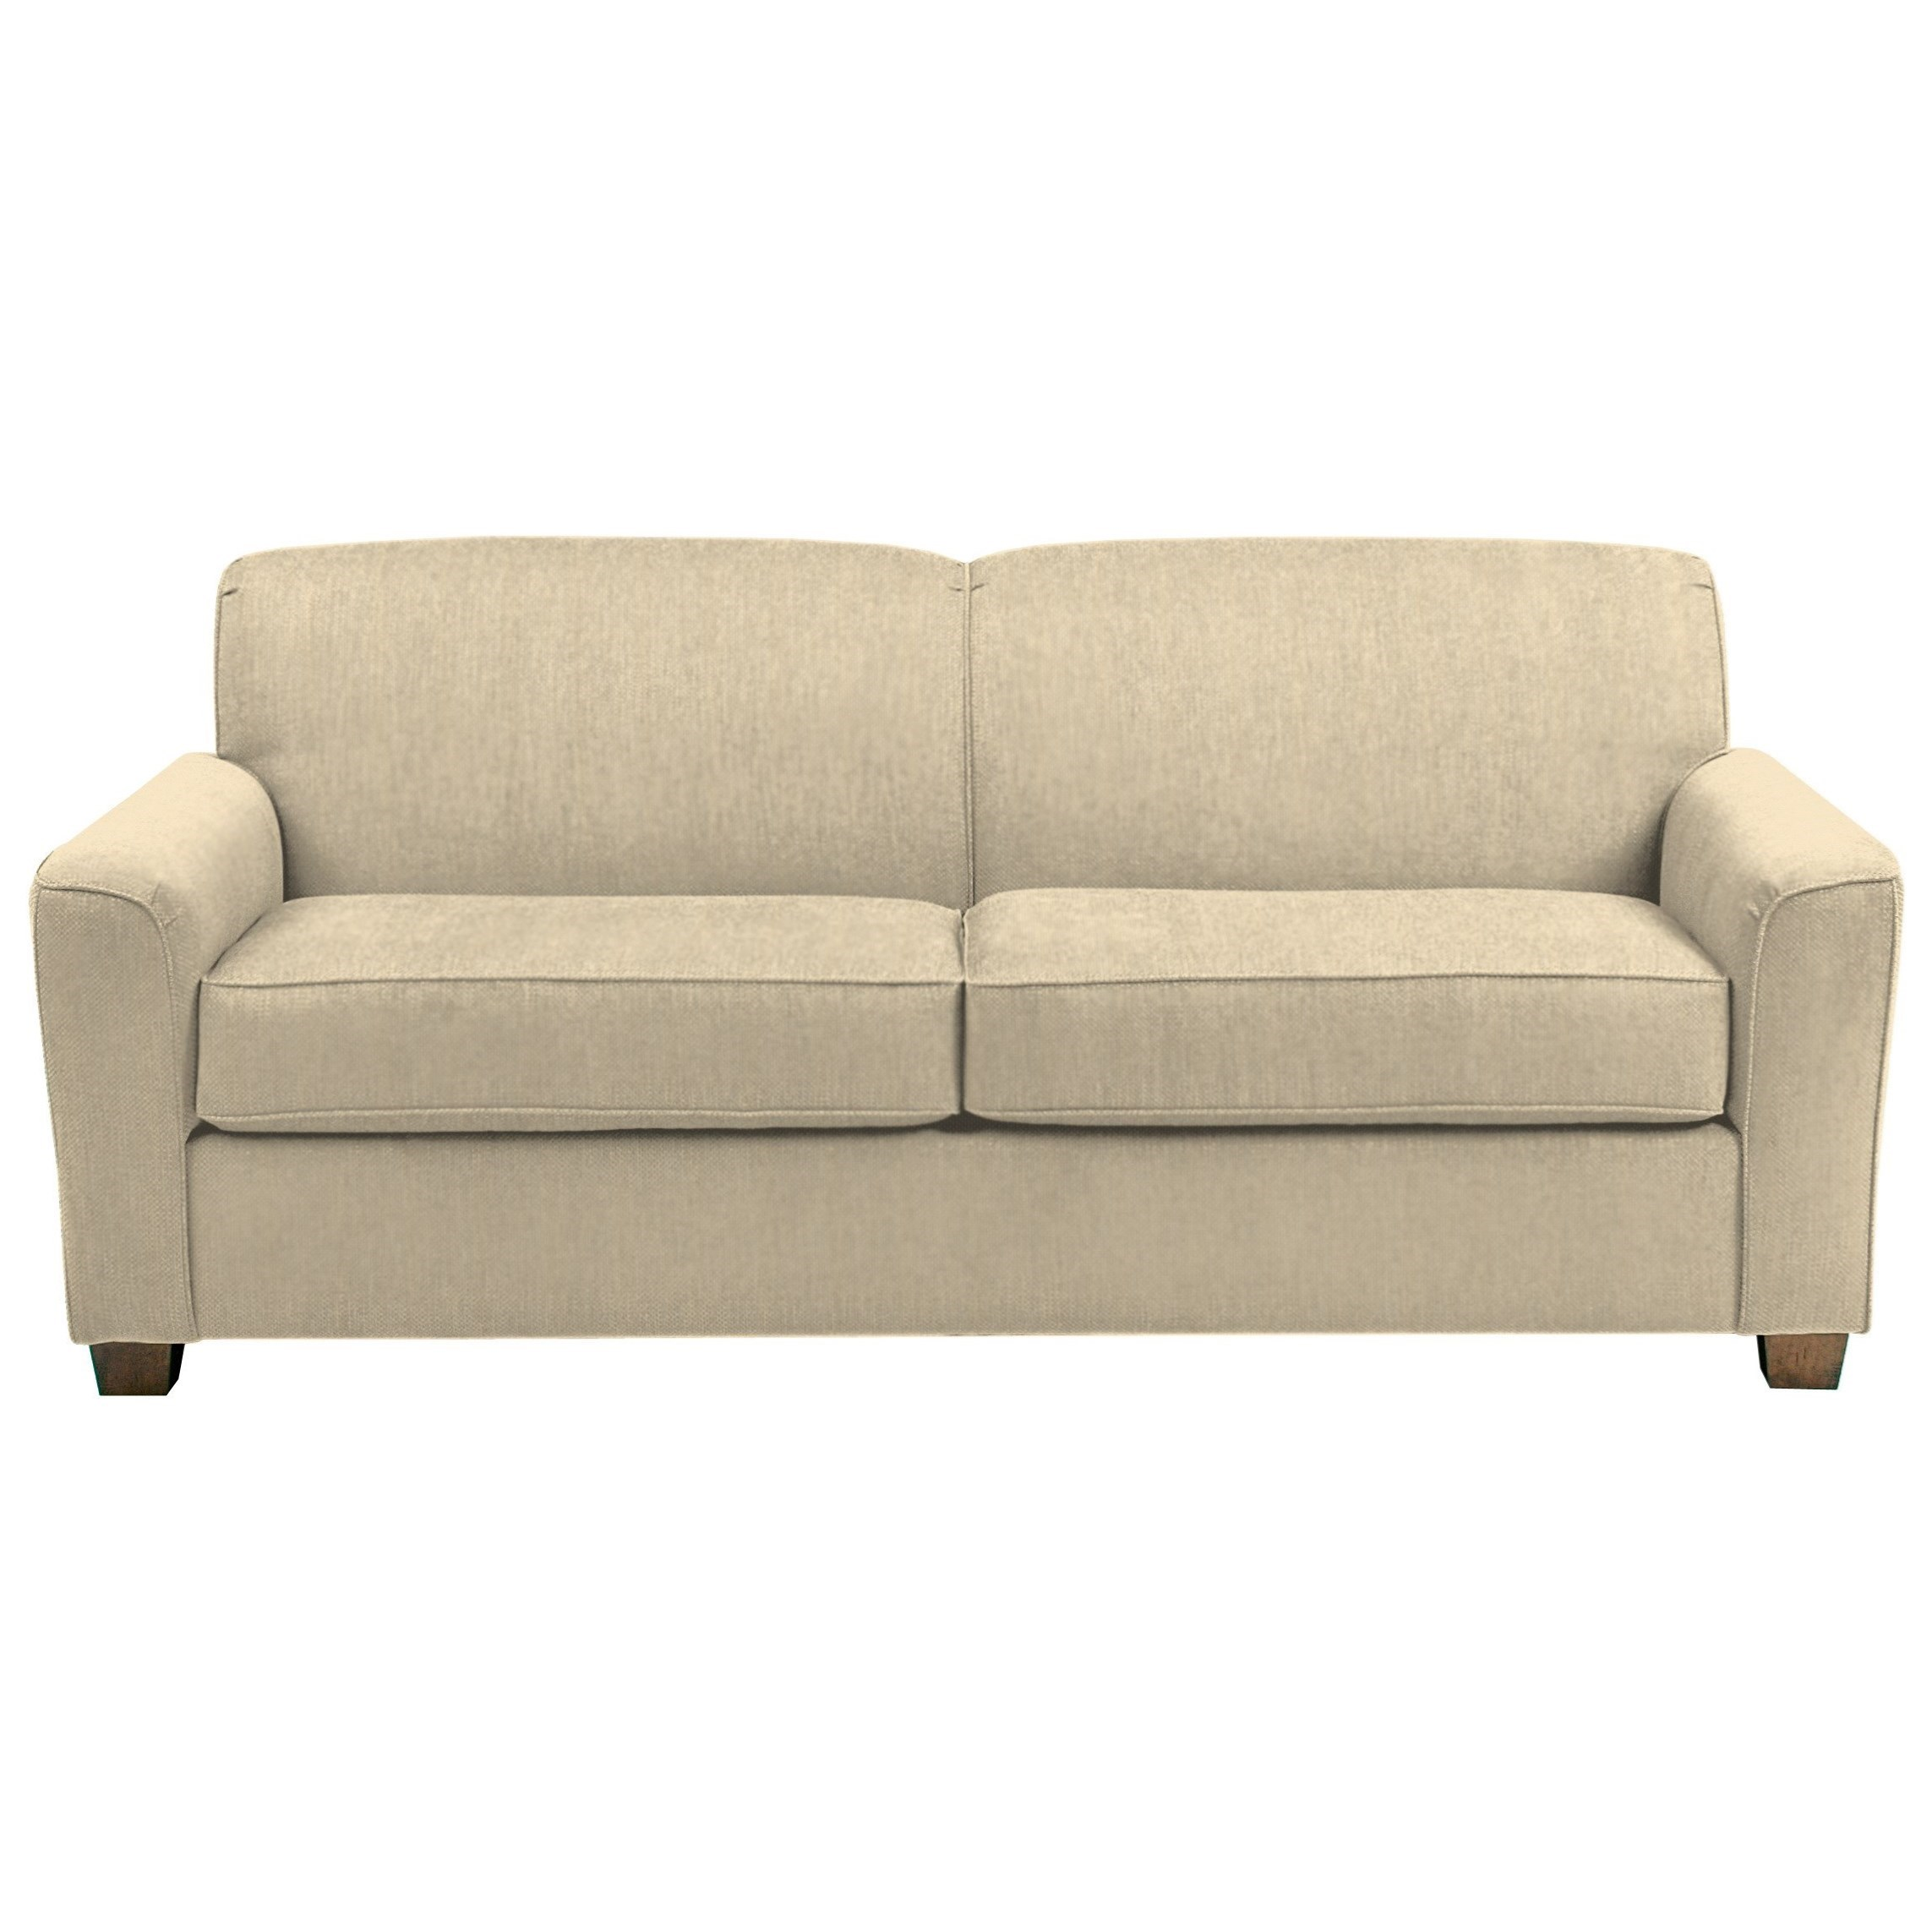 Best Home Furnishings Dinah Contemporary Queen Sofa